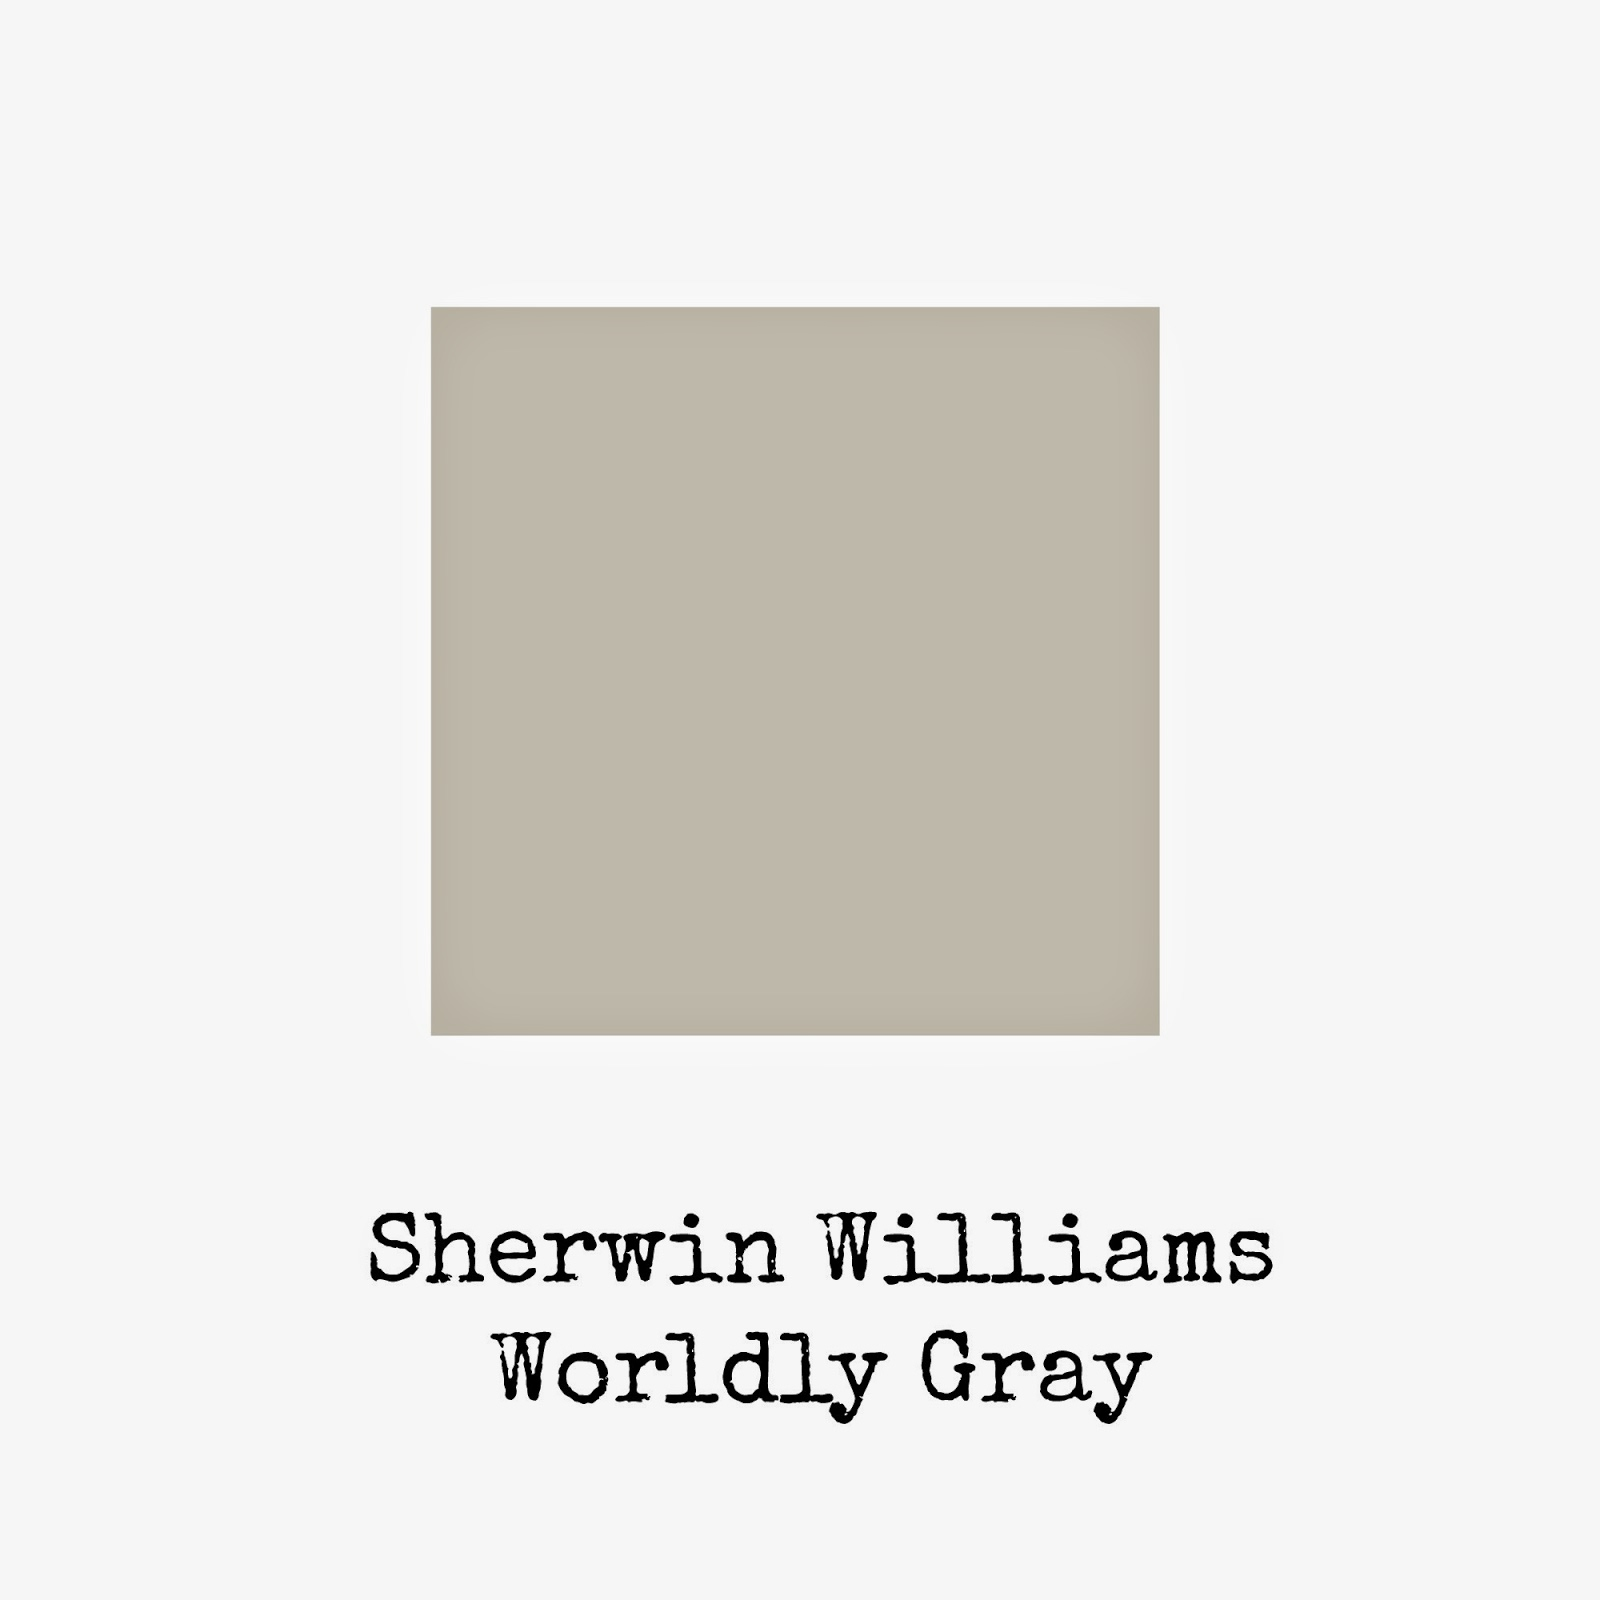 Bathroom Sherwin Williams Sale Sherwin Williams Coupon Sherwin Williams Exterior Paint Colors: Hidden Acres: Paint Is A Many-Splendored Thing